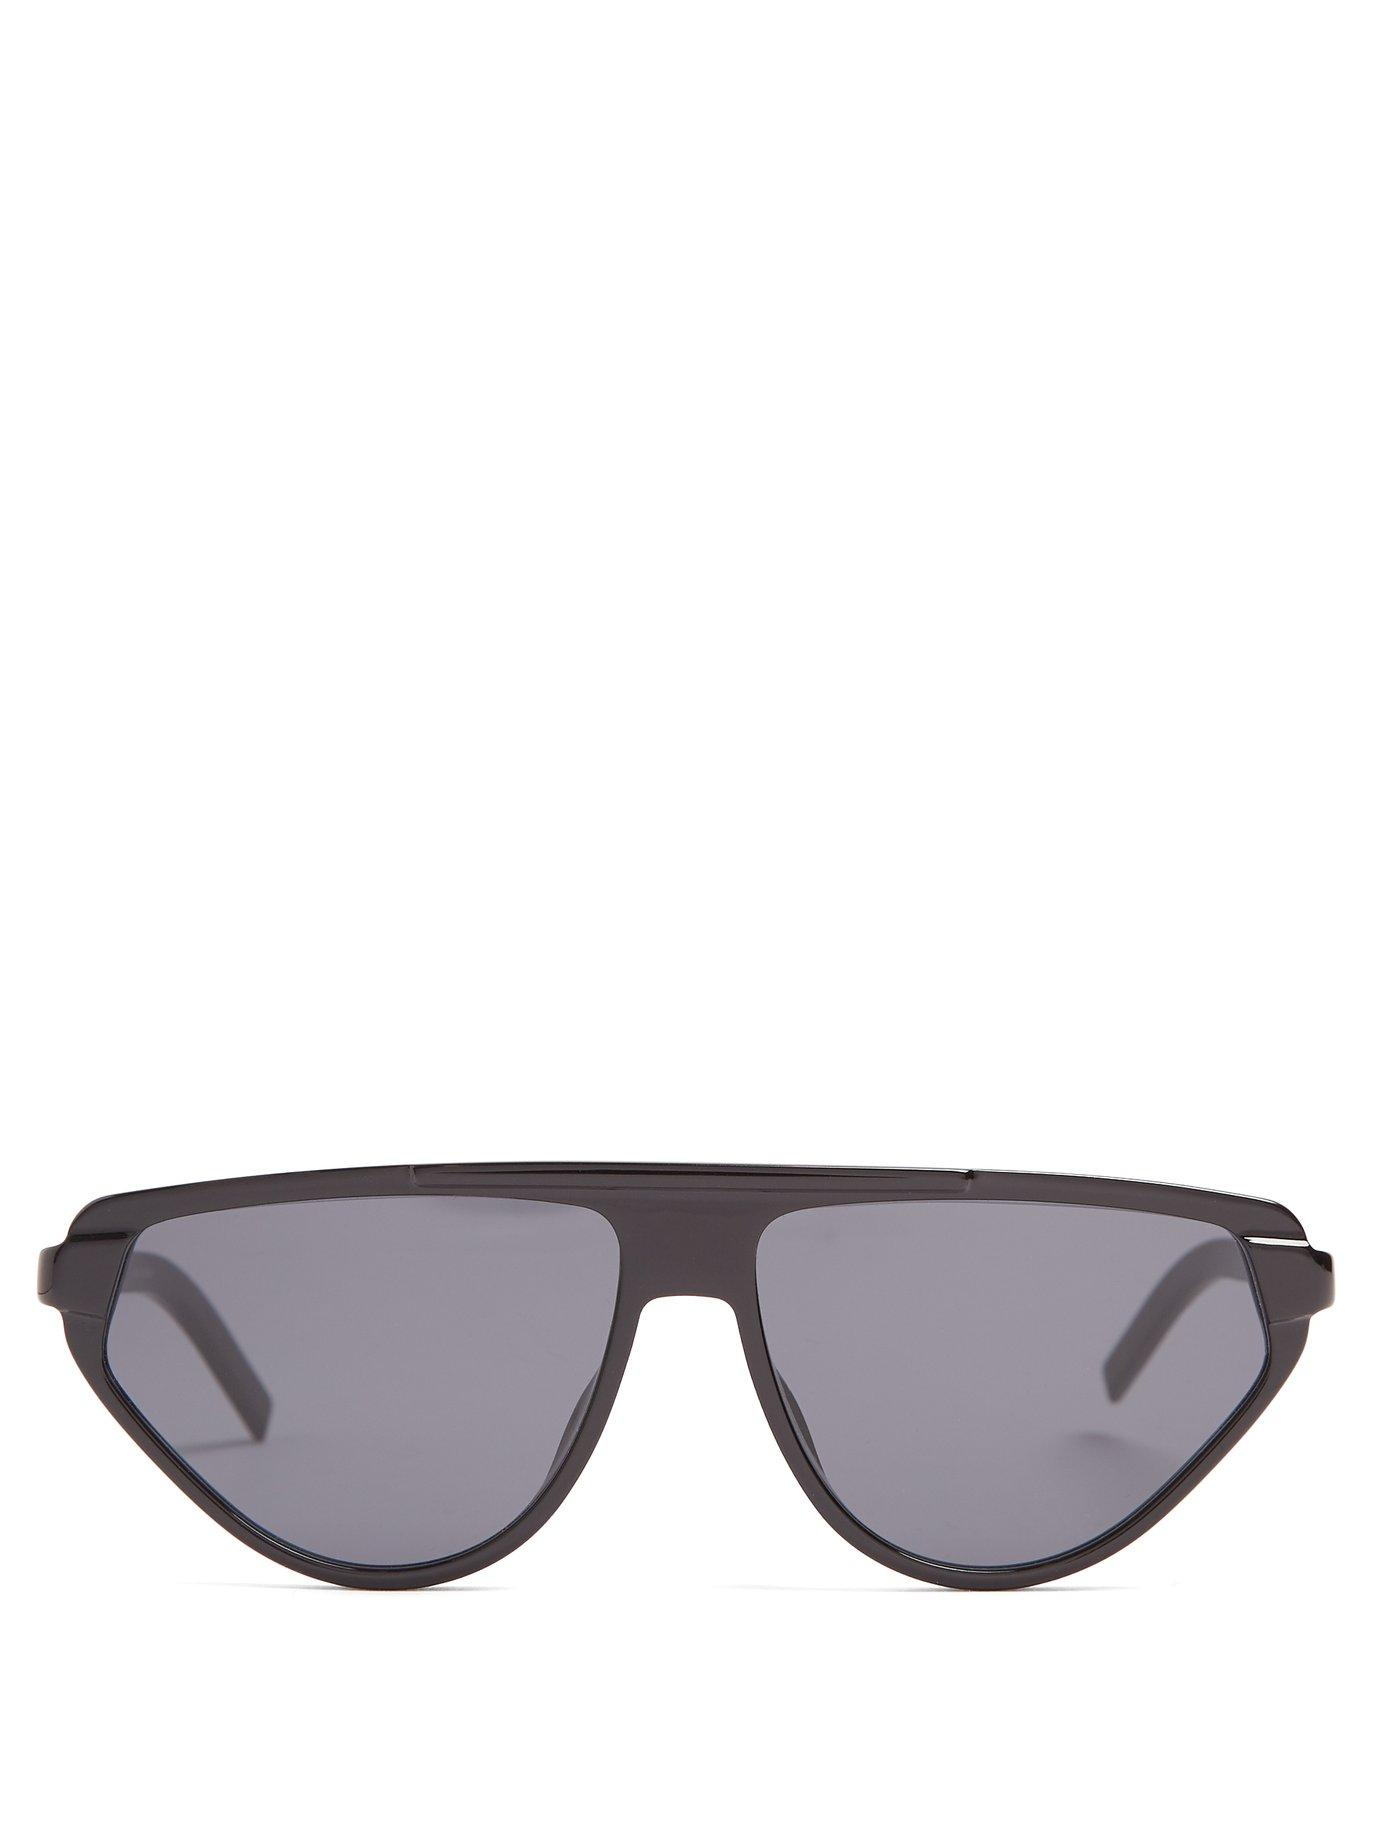 c611dc496a948 Dior Homme D-Frame Acetate Sunglasses In Black